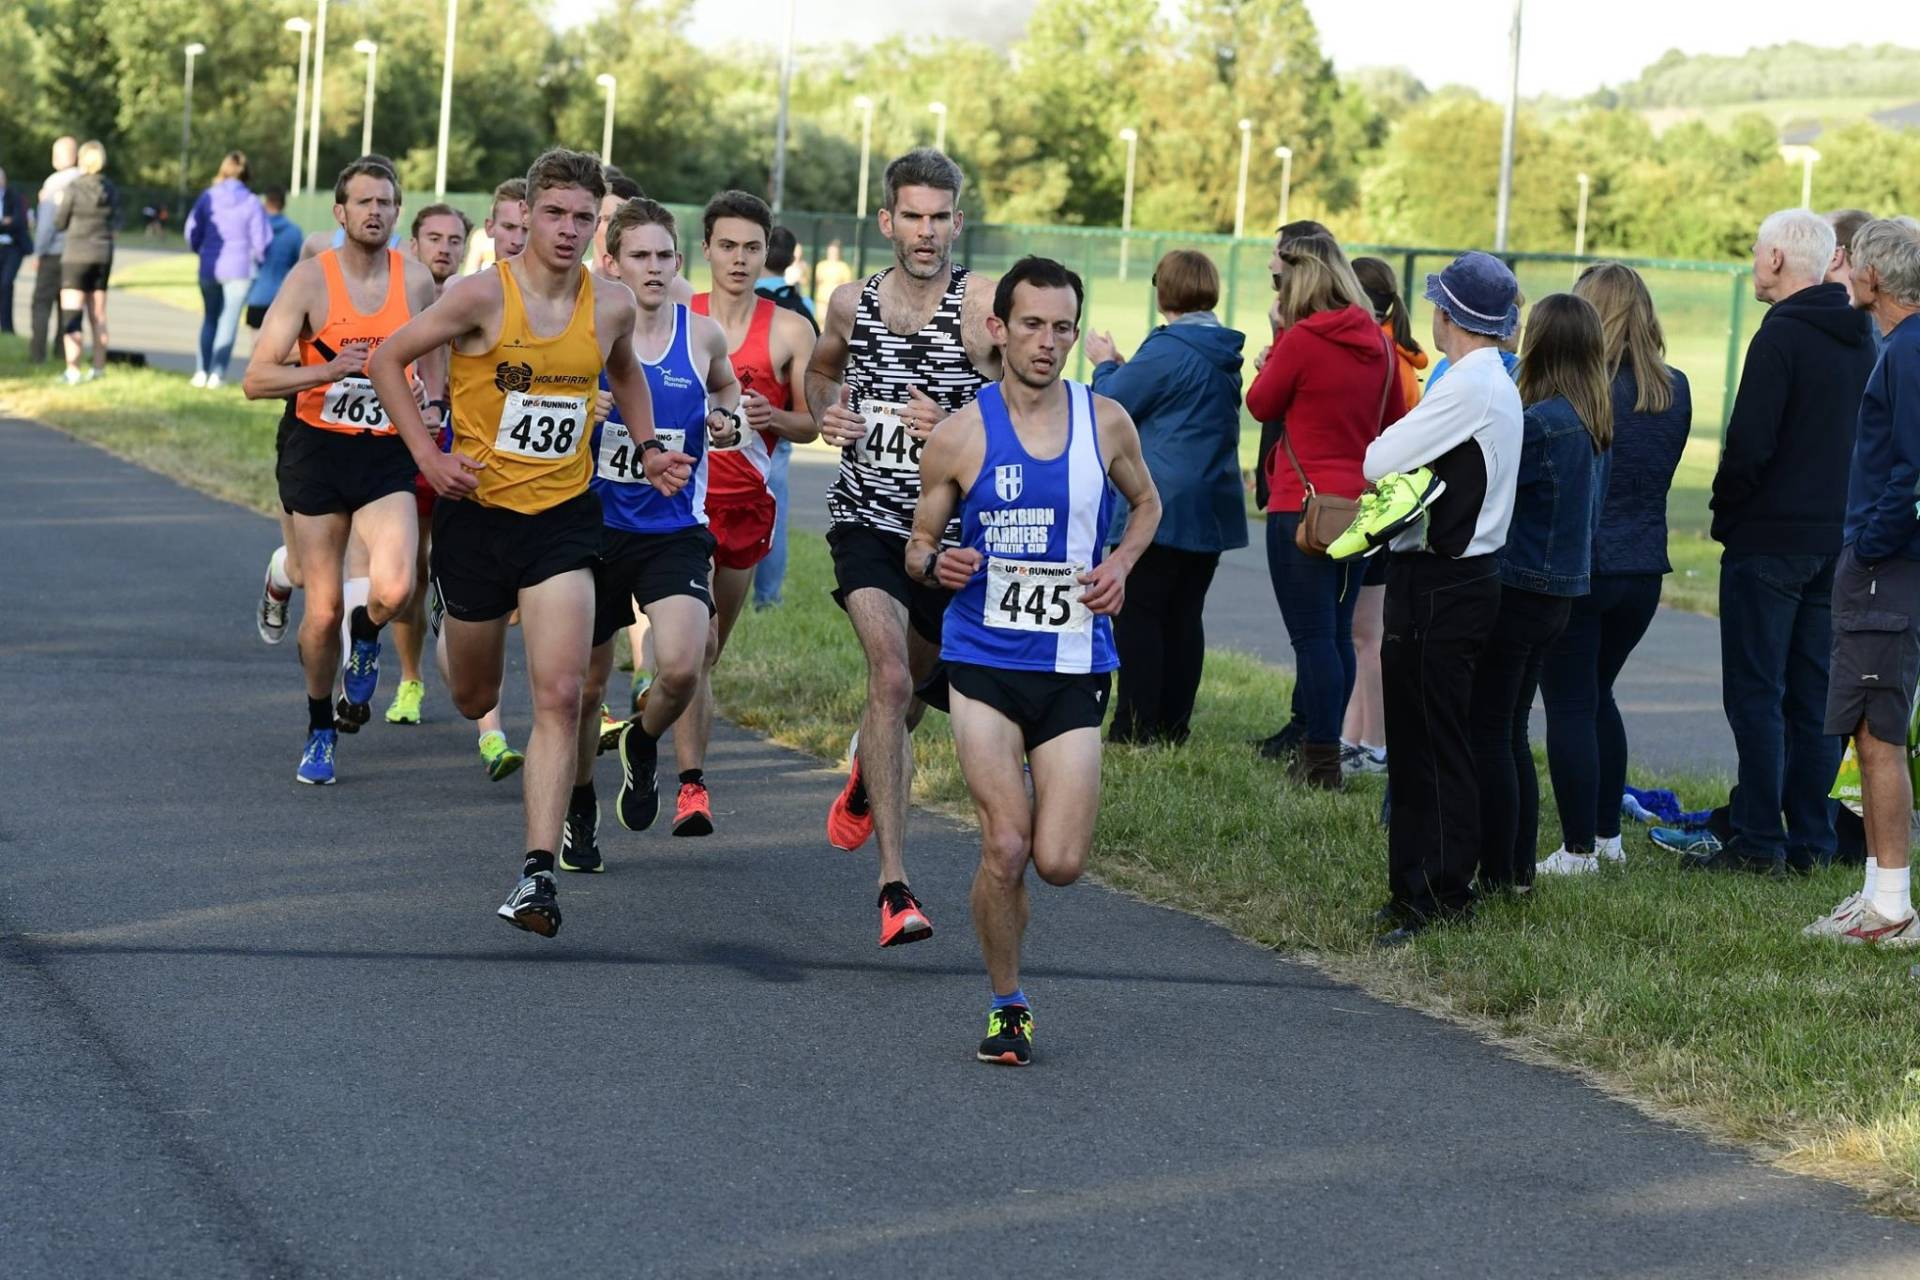 Harriers Win UKYDL Division 1 Match at Trafford to stay top – PB's galore at Podium for Harriers – Ben 2nd at Freckleton Half – Victoria 3rd V35 at BMAF 5k Championships – Pauline Wins Colshaw Hall 10k & breaks Course Record – Chris 2nd at Crazy Cow 10k